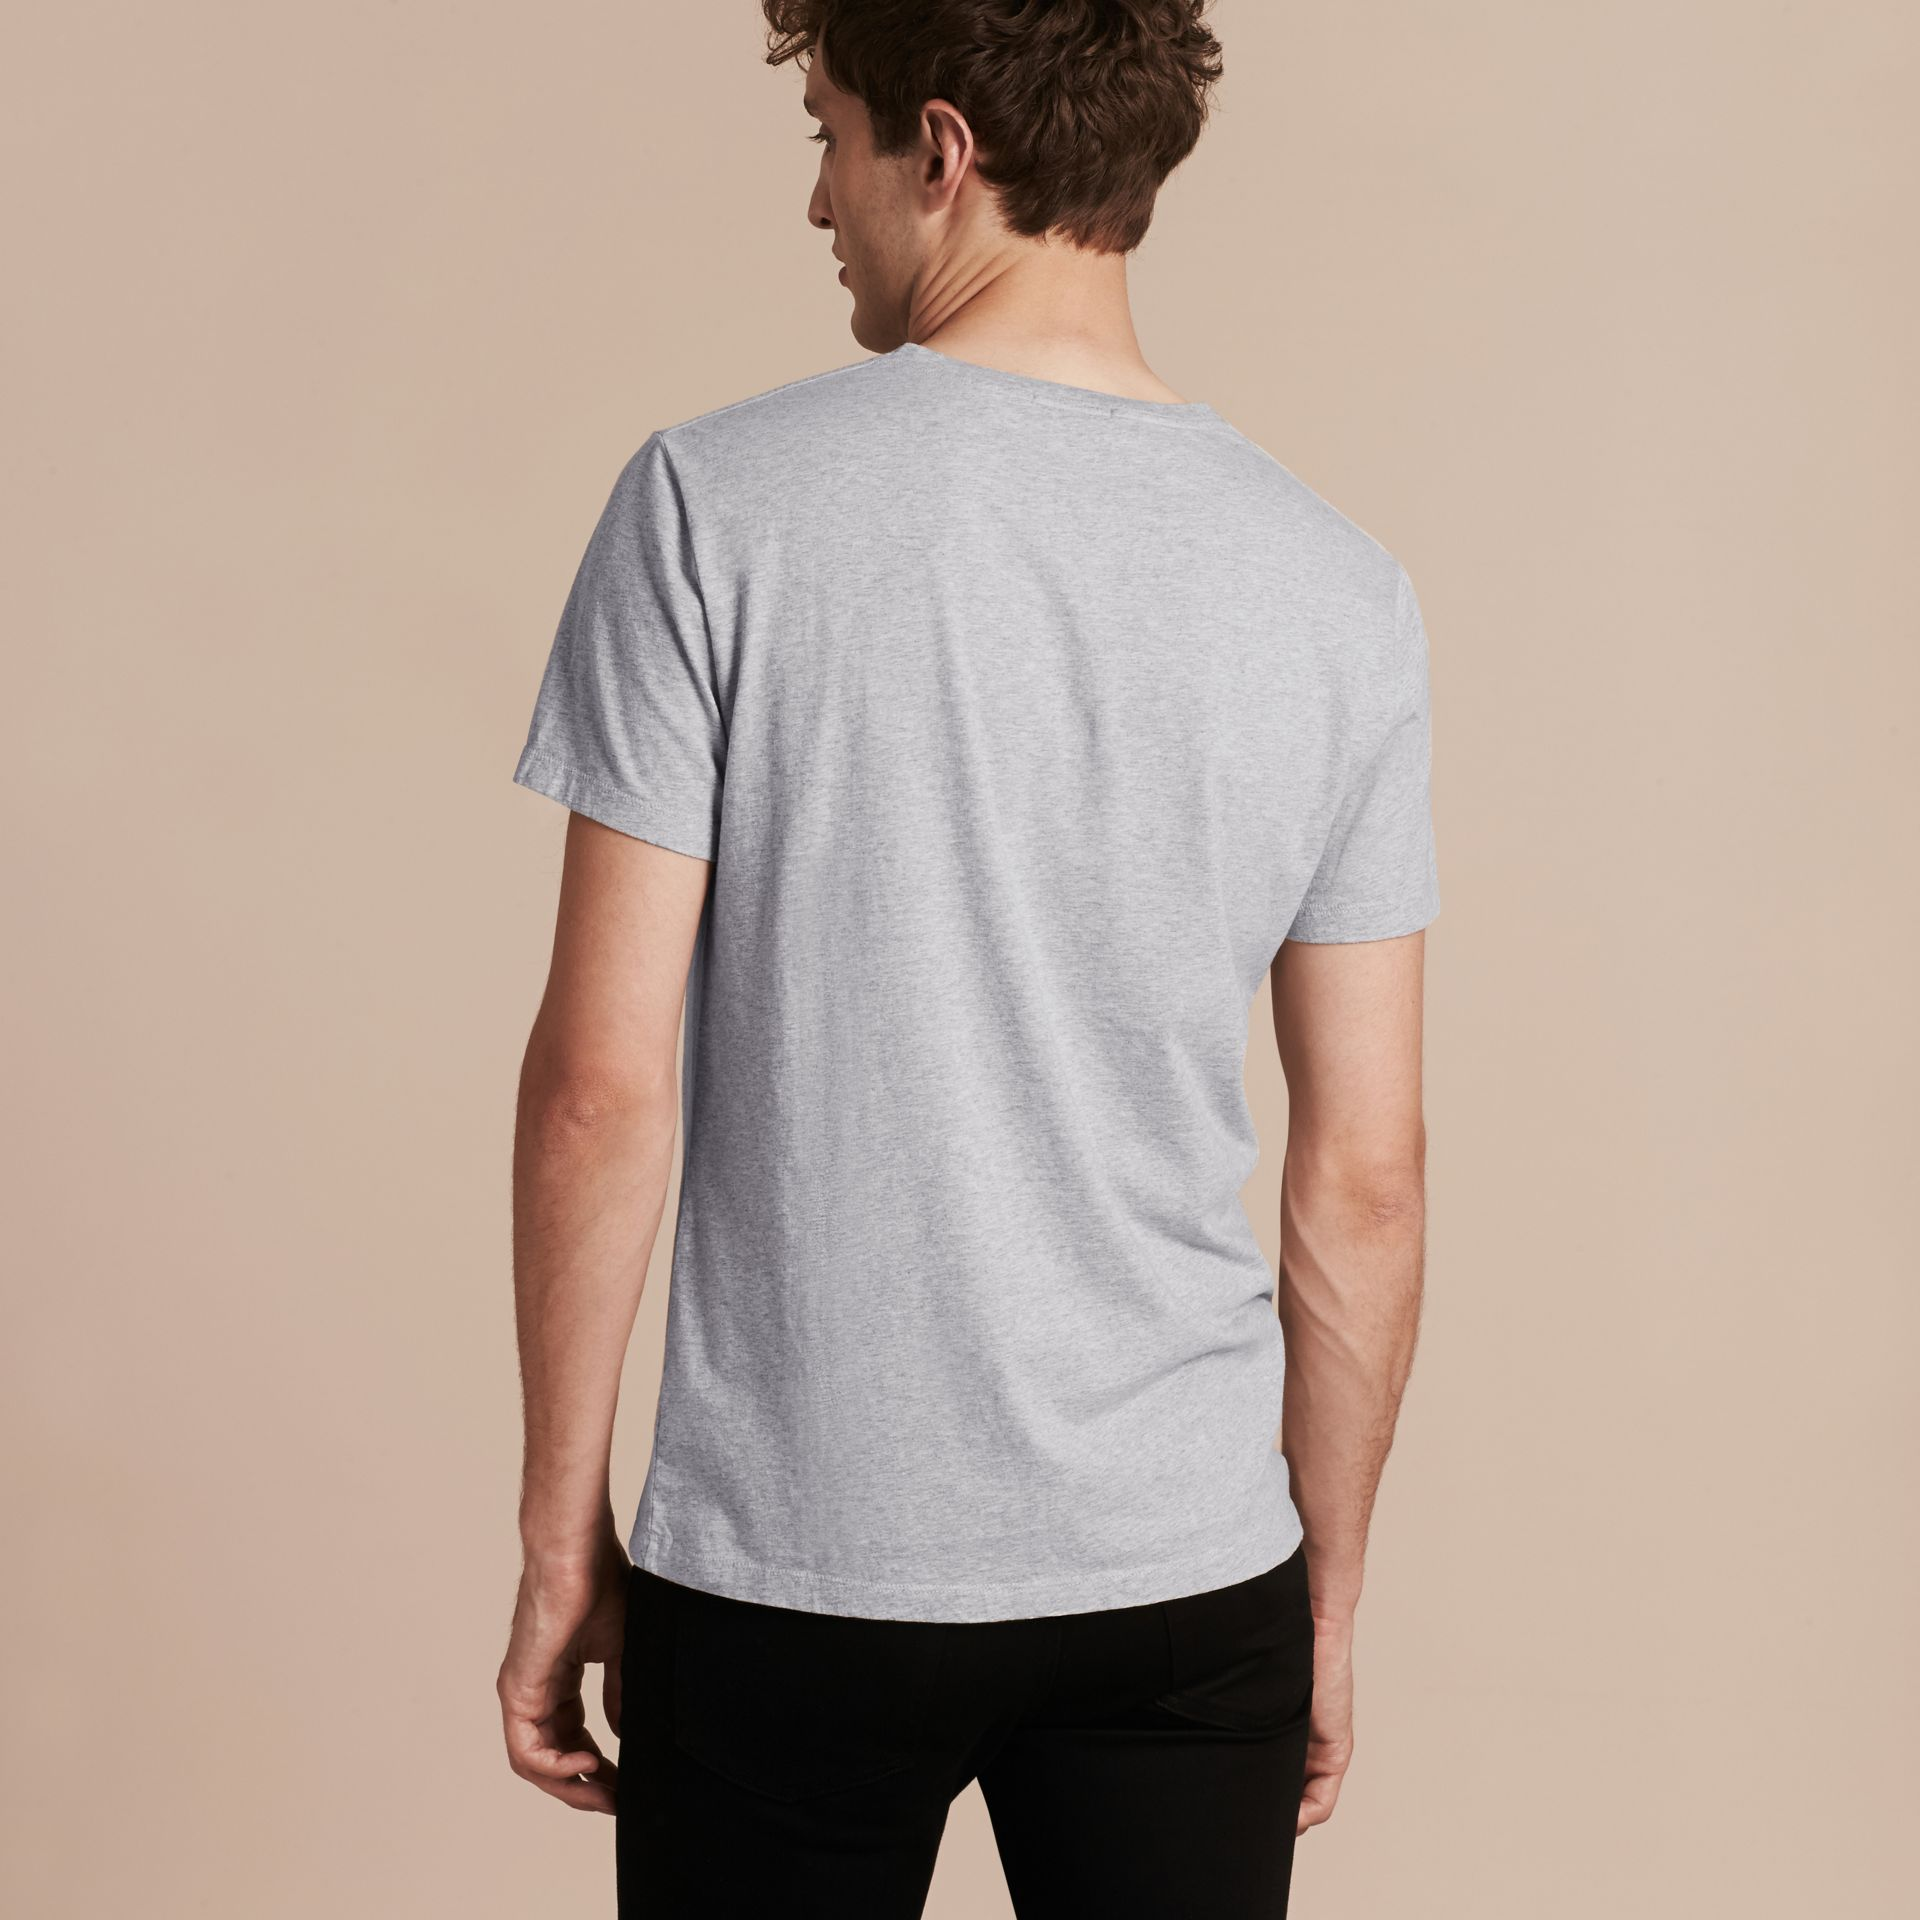 Pale grey melange Brushstroke Check Print Cotton T-Shirt Pale Grey Melange - gallery image 3